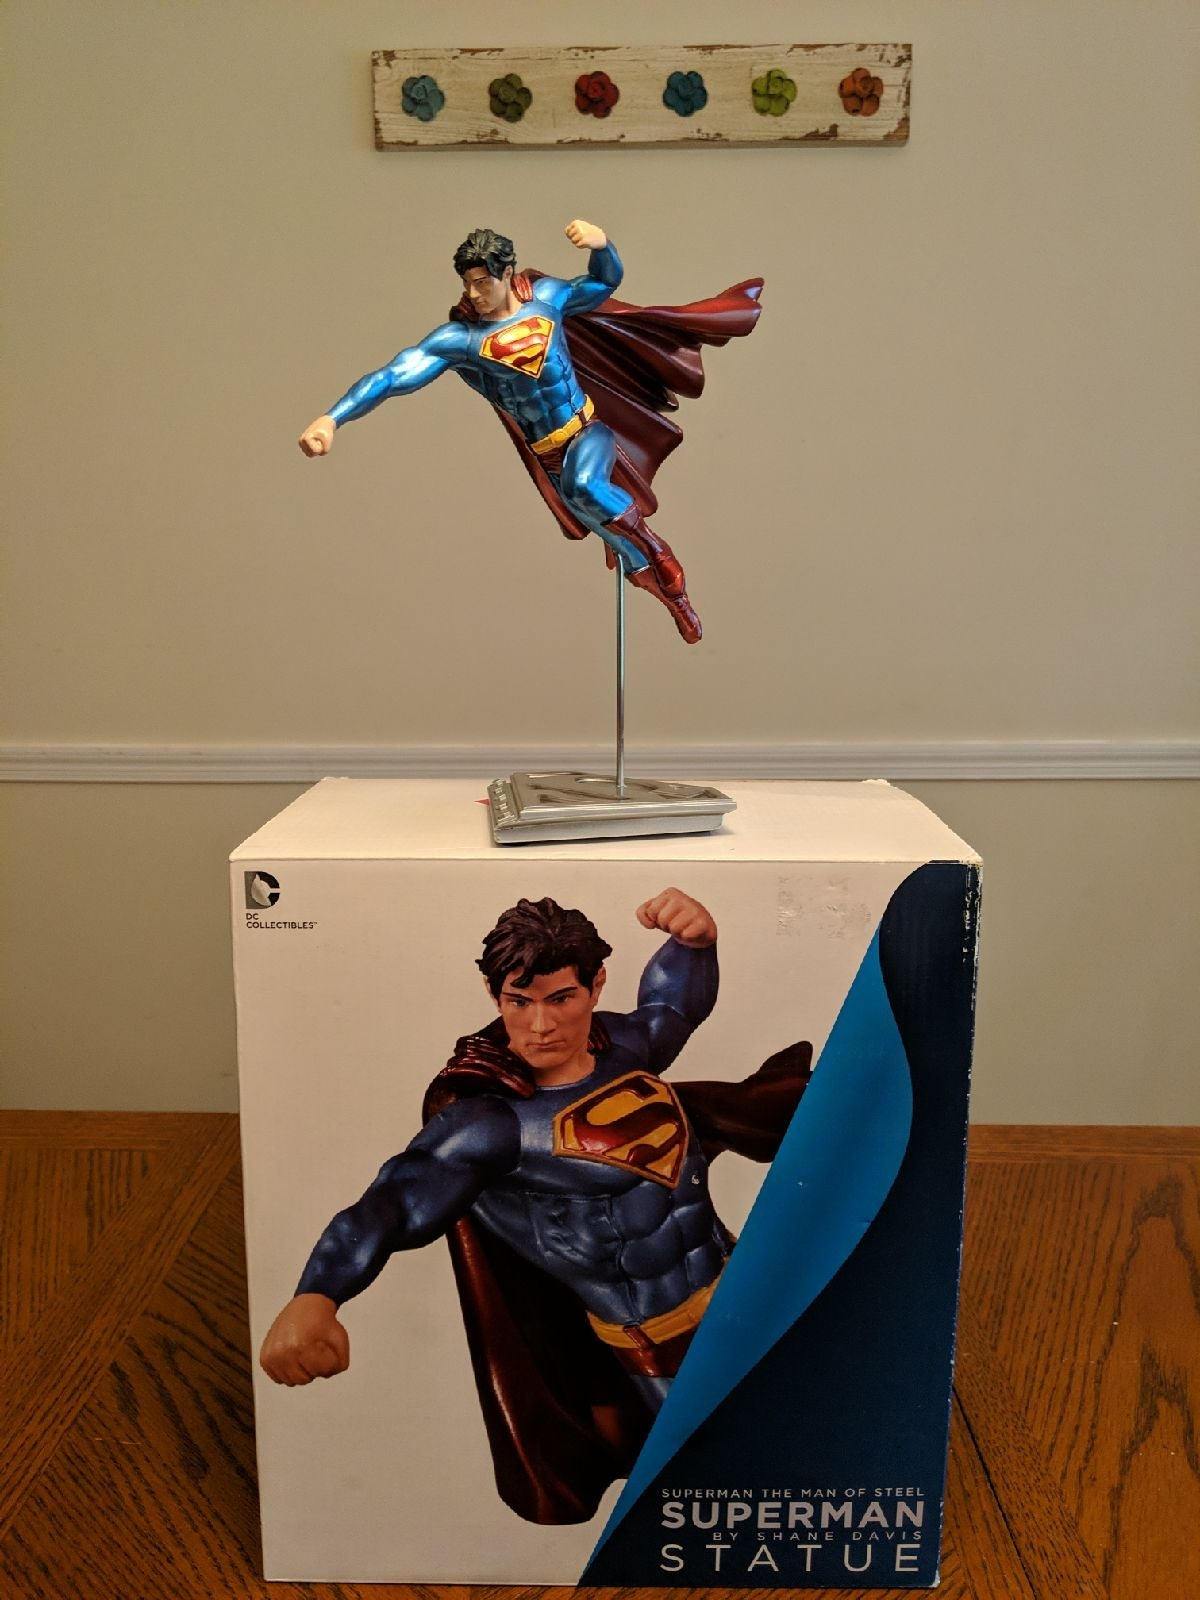 8 INCH LIMITED EDITION SUPERMAN STATUE